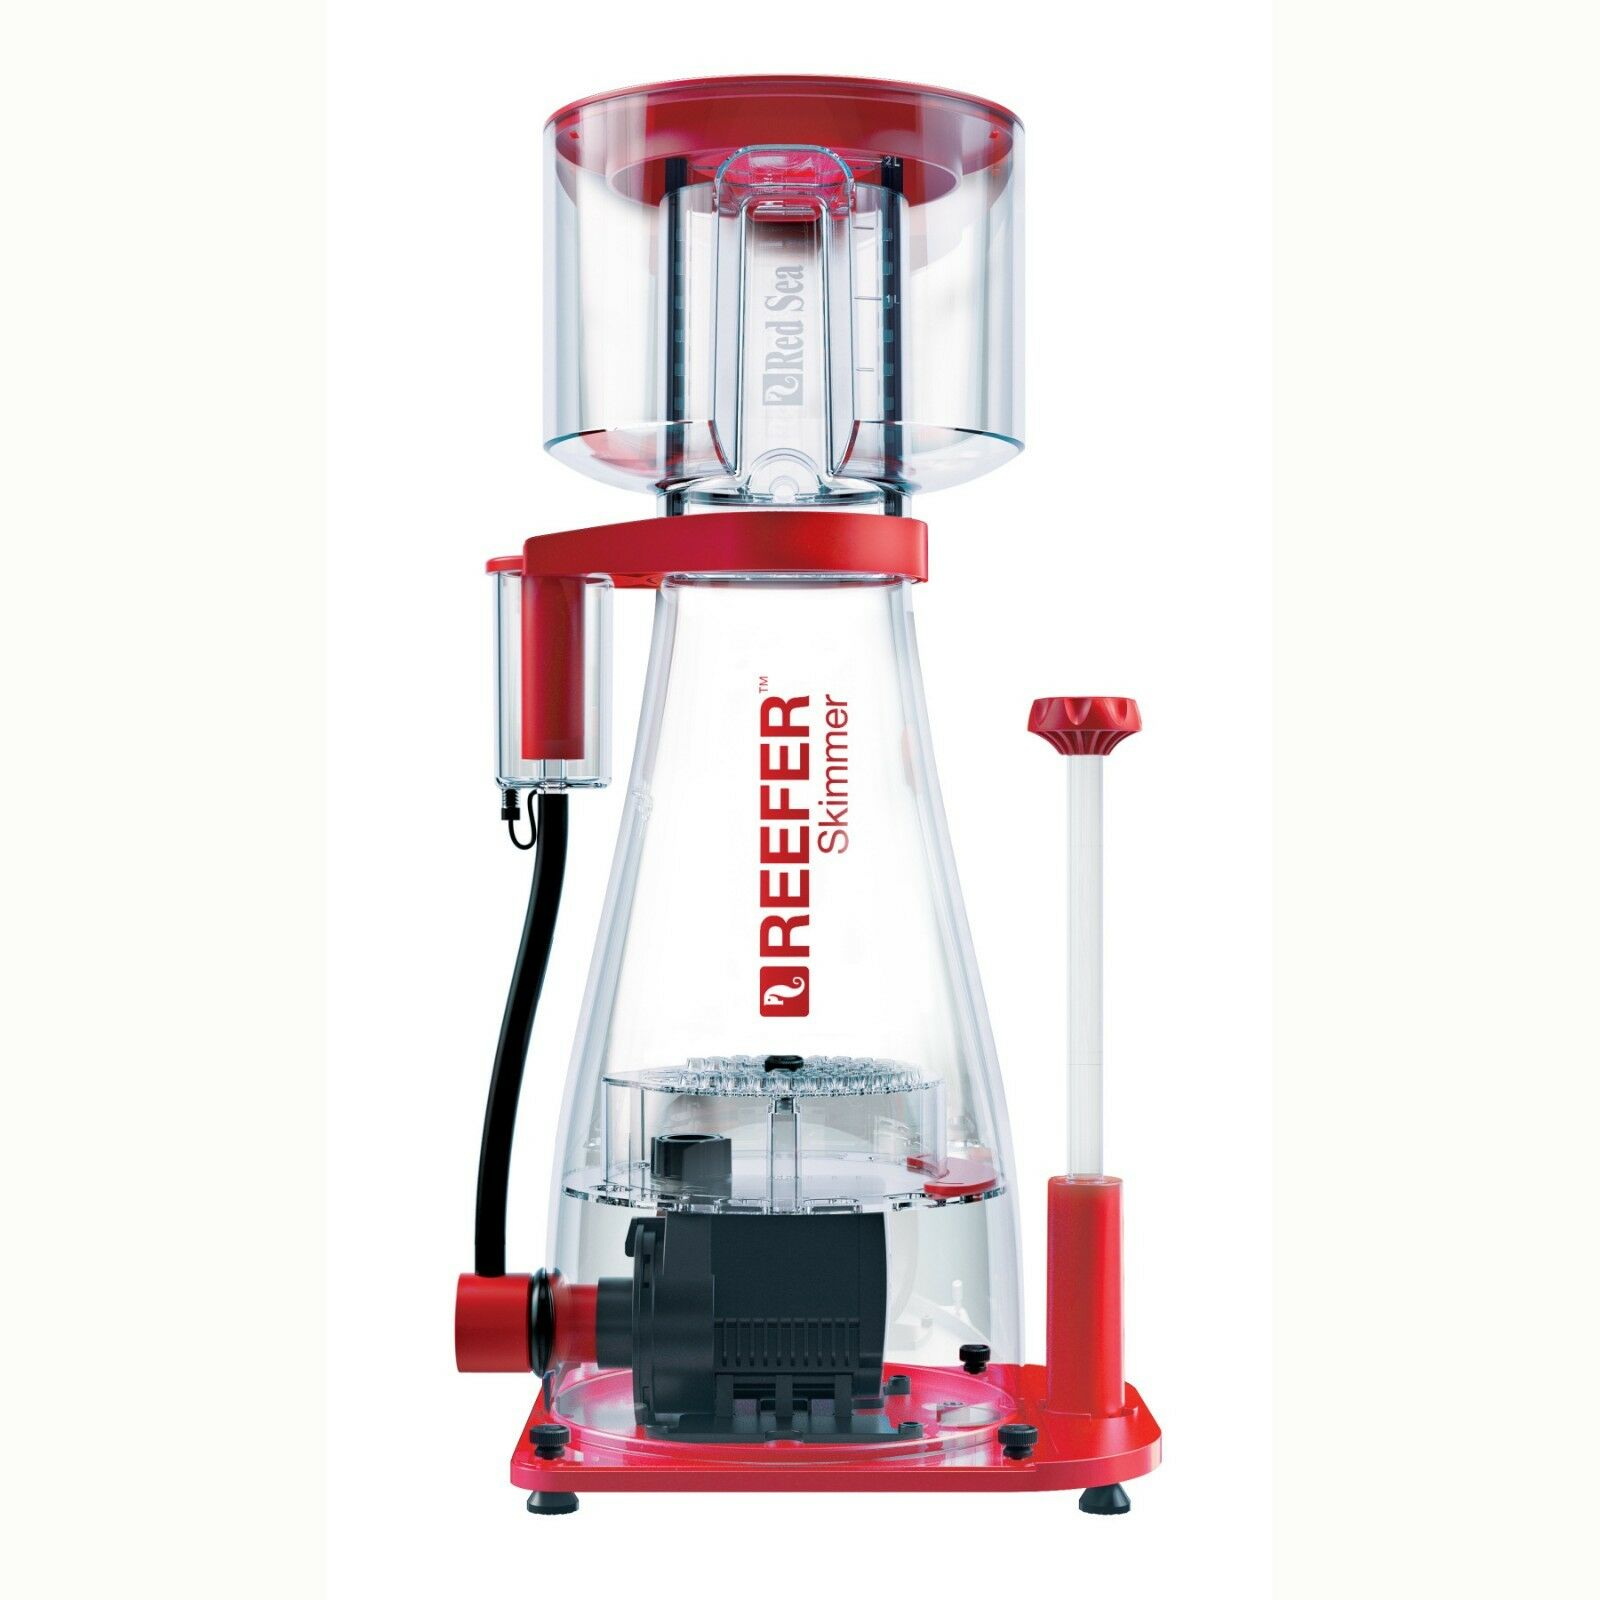 Red SEA reefer SKIMMER 900 s umatoio di proteine